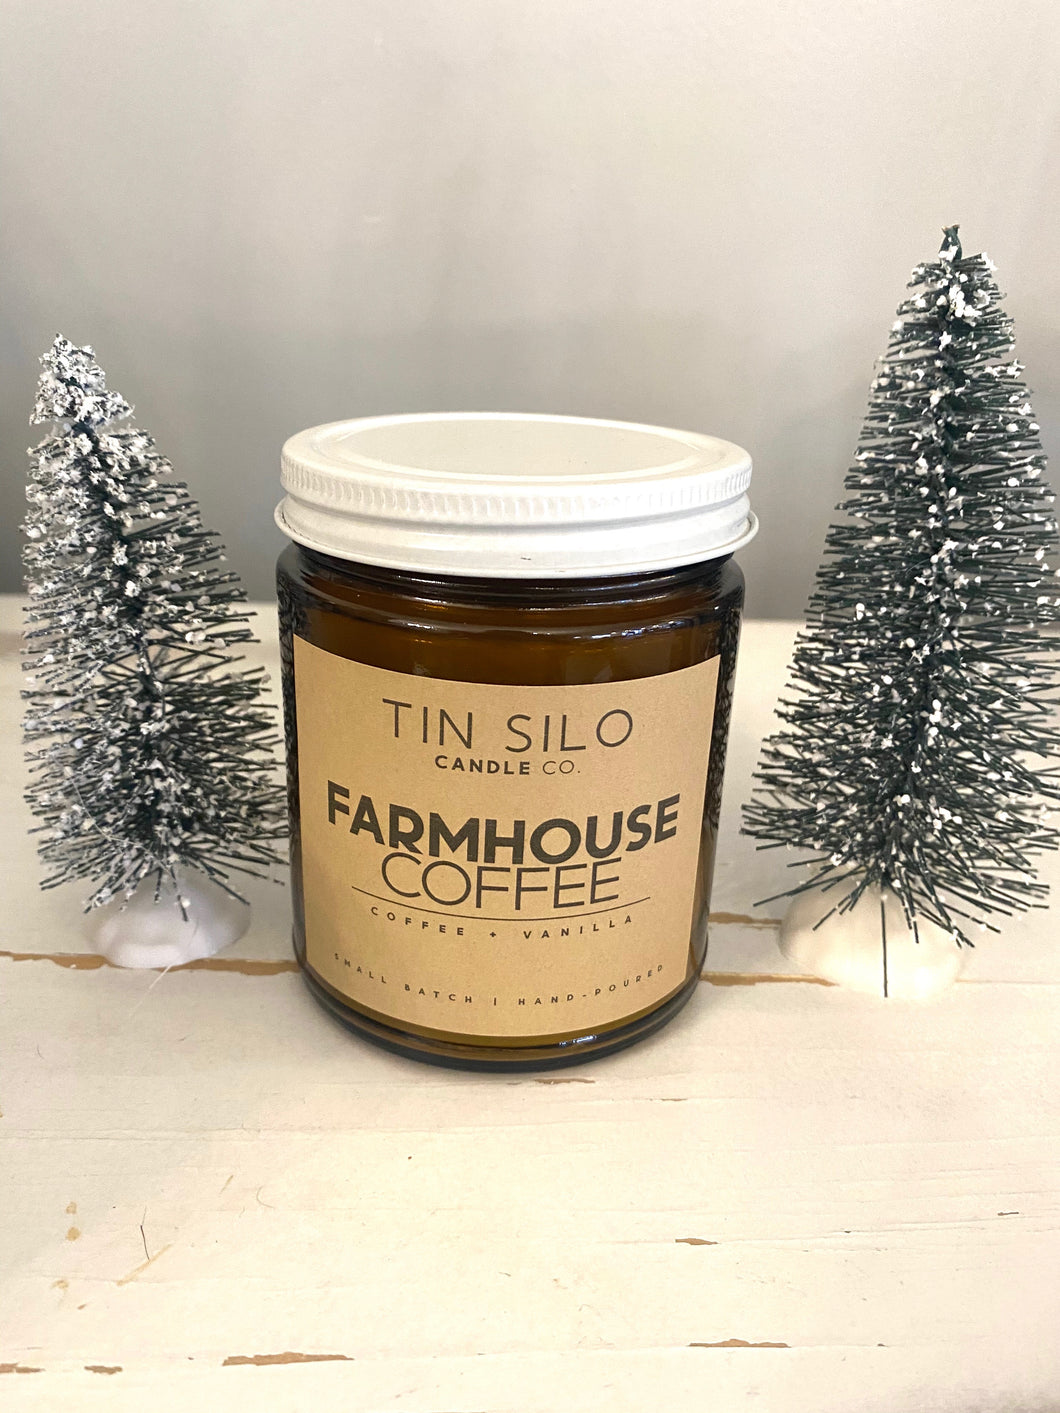 Farmhouse Coffee- 9 oz. Candle